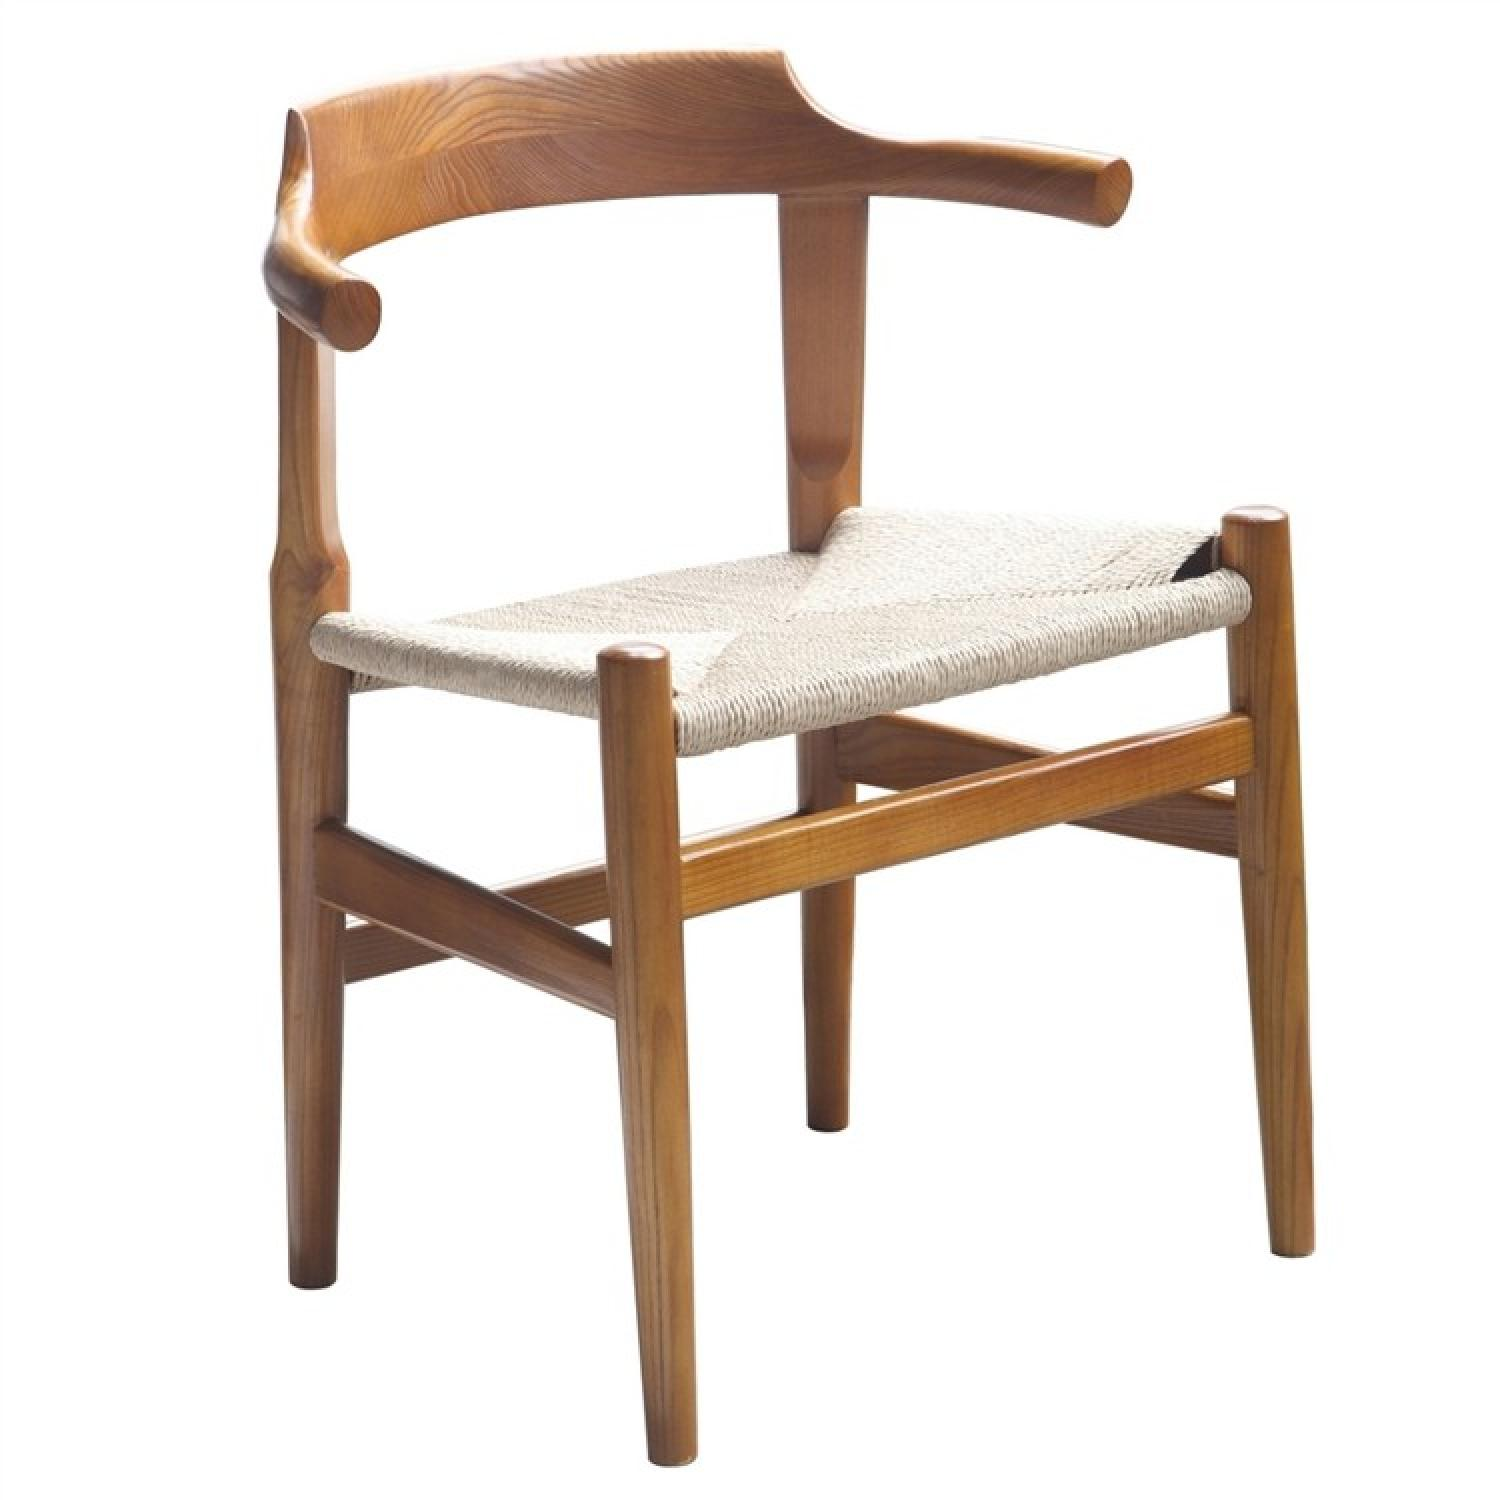 Solid Wood Frame Dining Chair w/ Curved Back & Natural Color